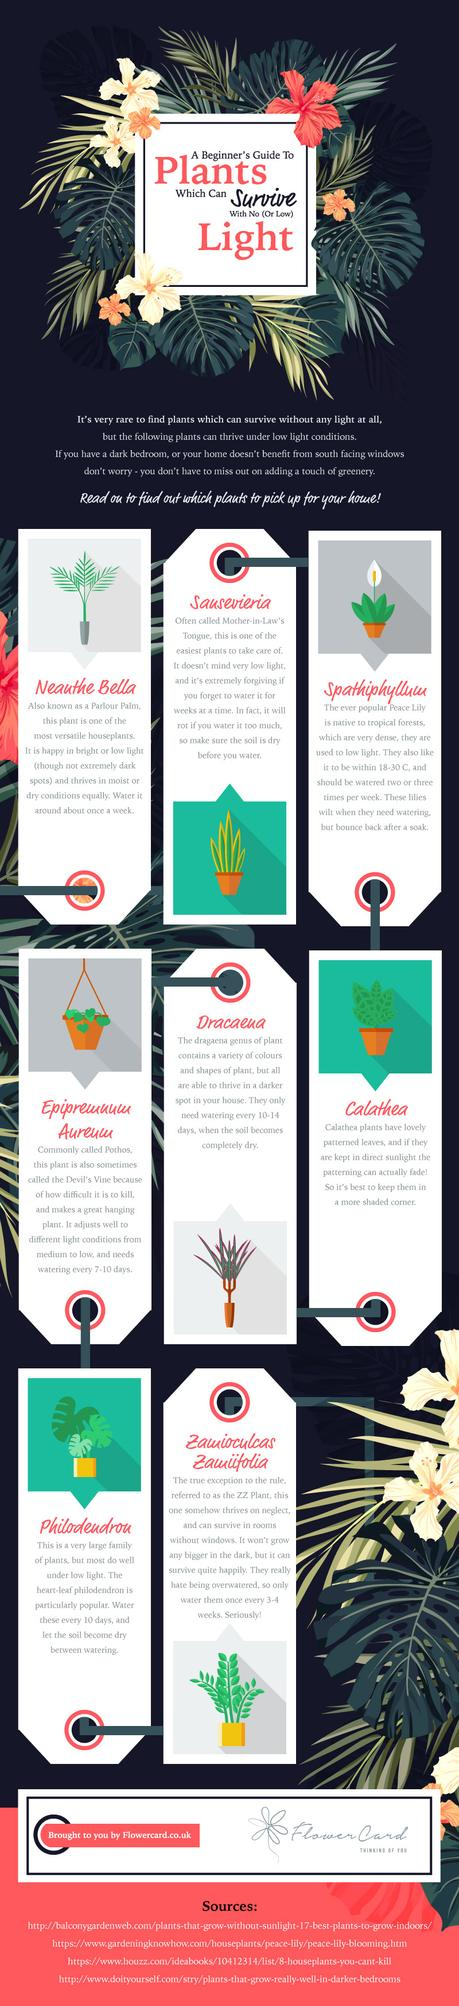 low-light plants infographic